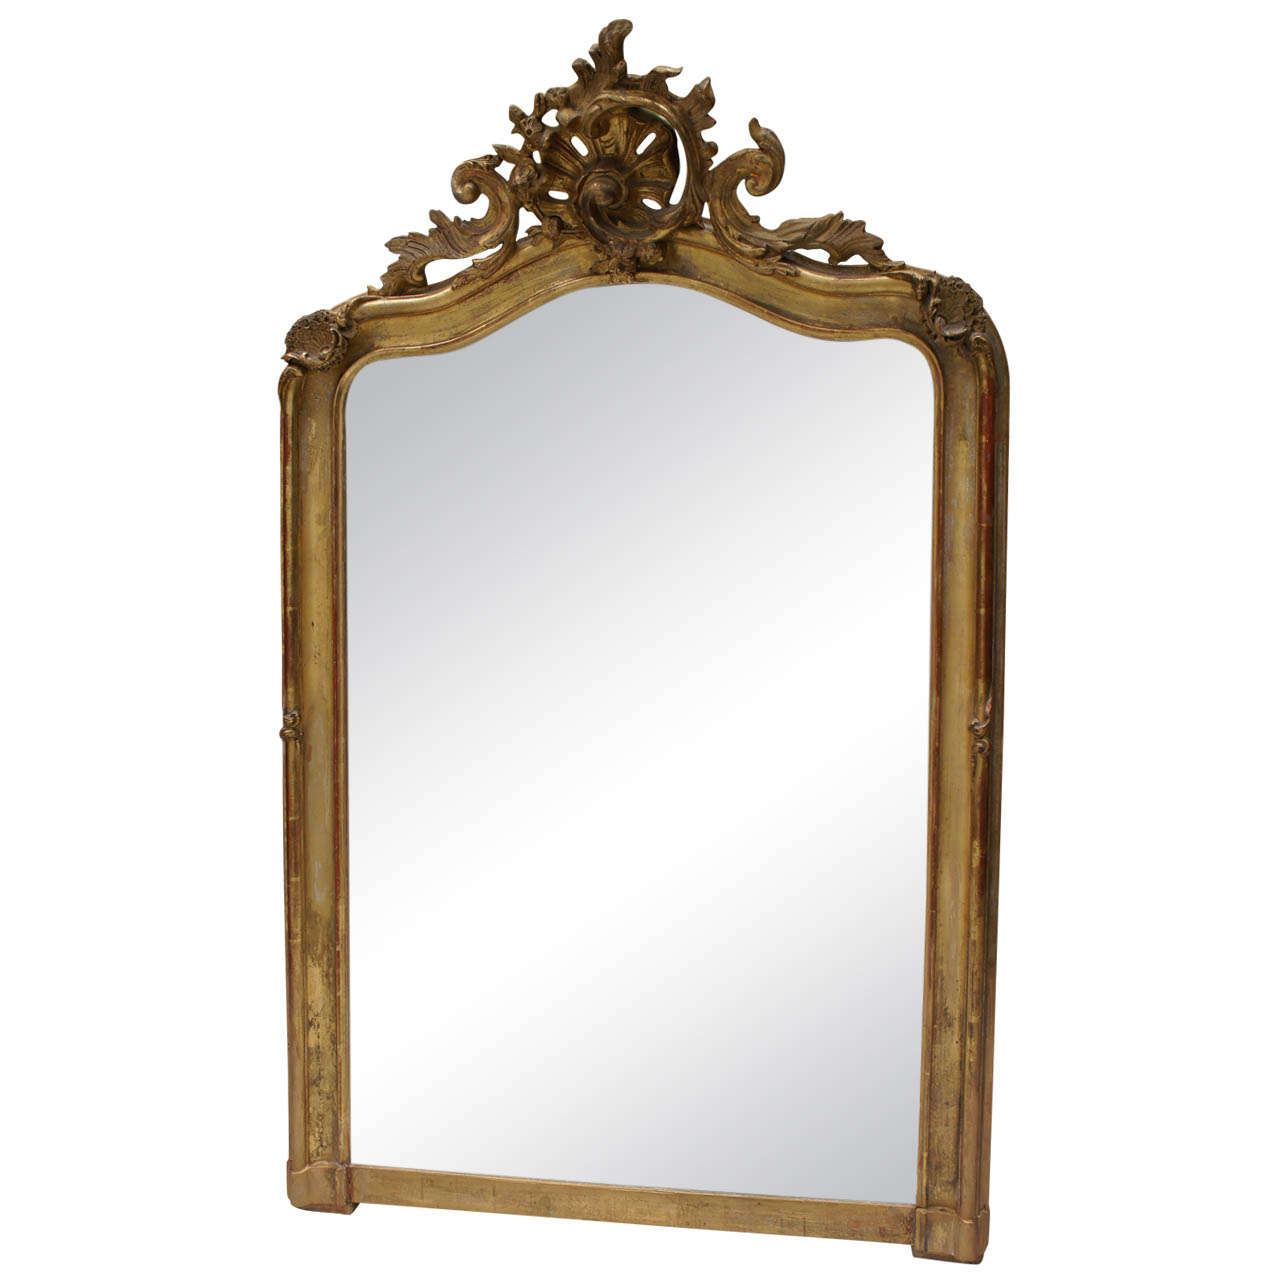 19th century rococo gilt mantel mirror for sale at 1stdibs for Fireplace mirrors